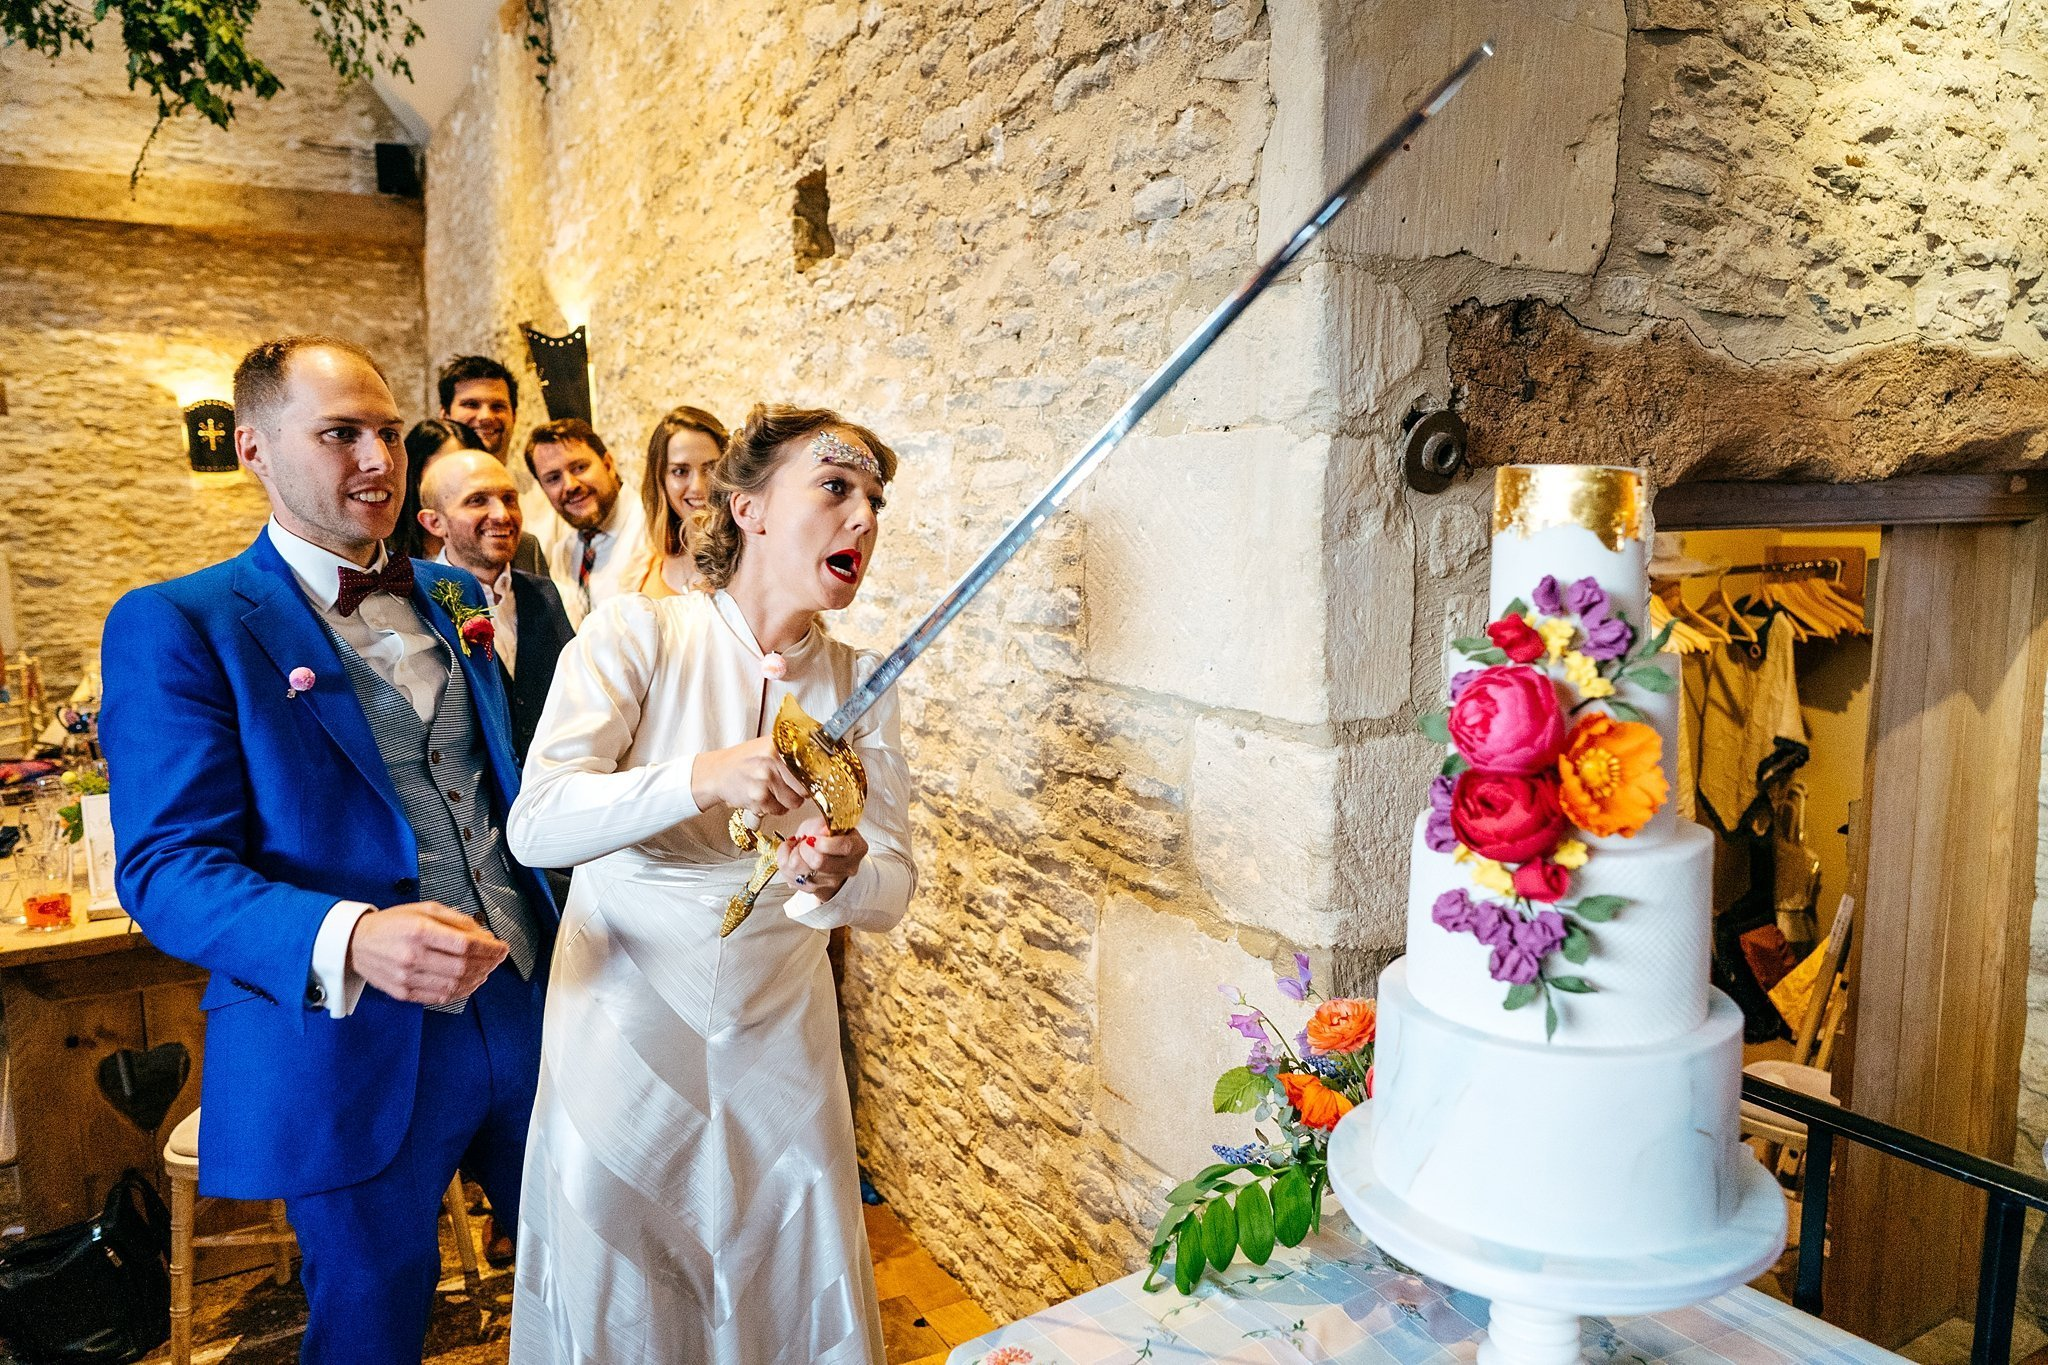 Sleaigh the cake cake cut at Oxleaze Barn Wedding